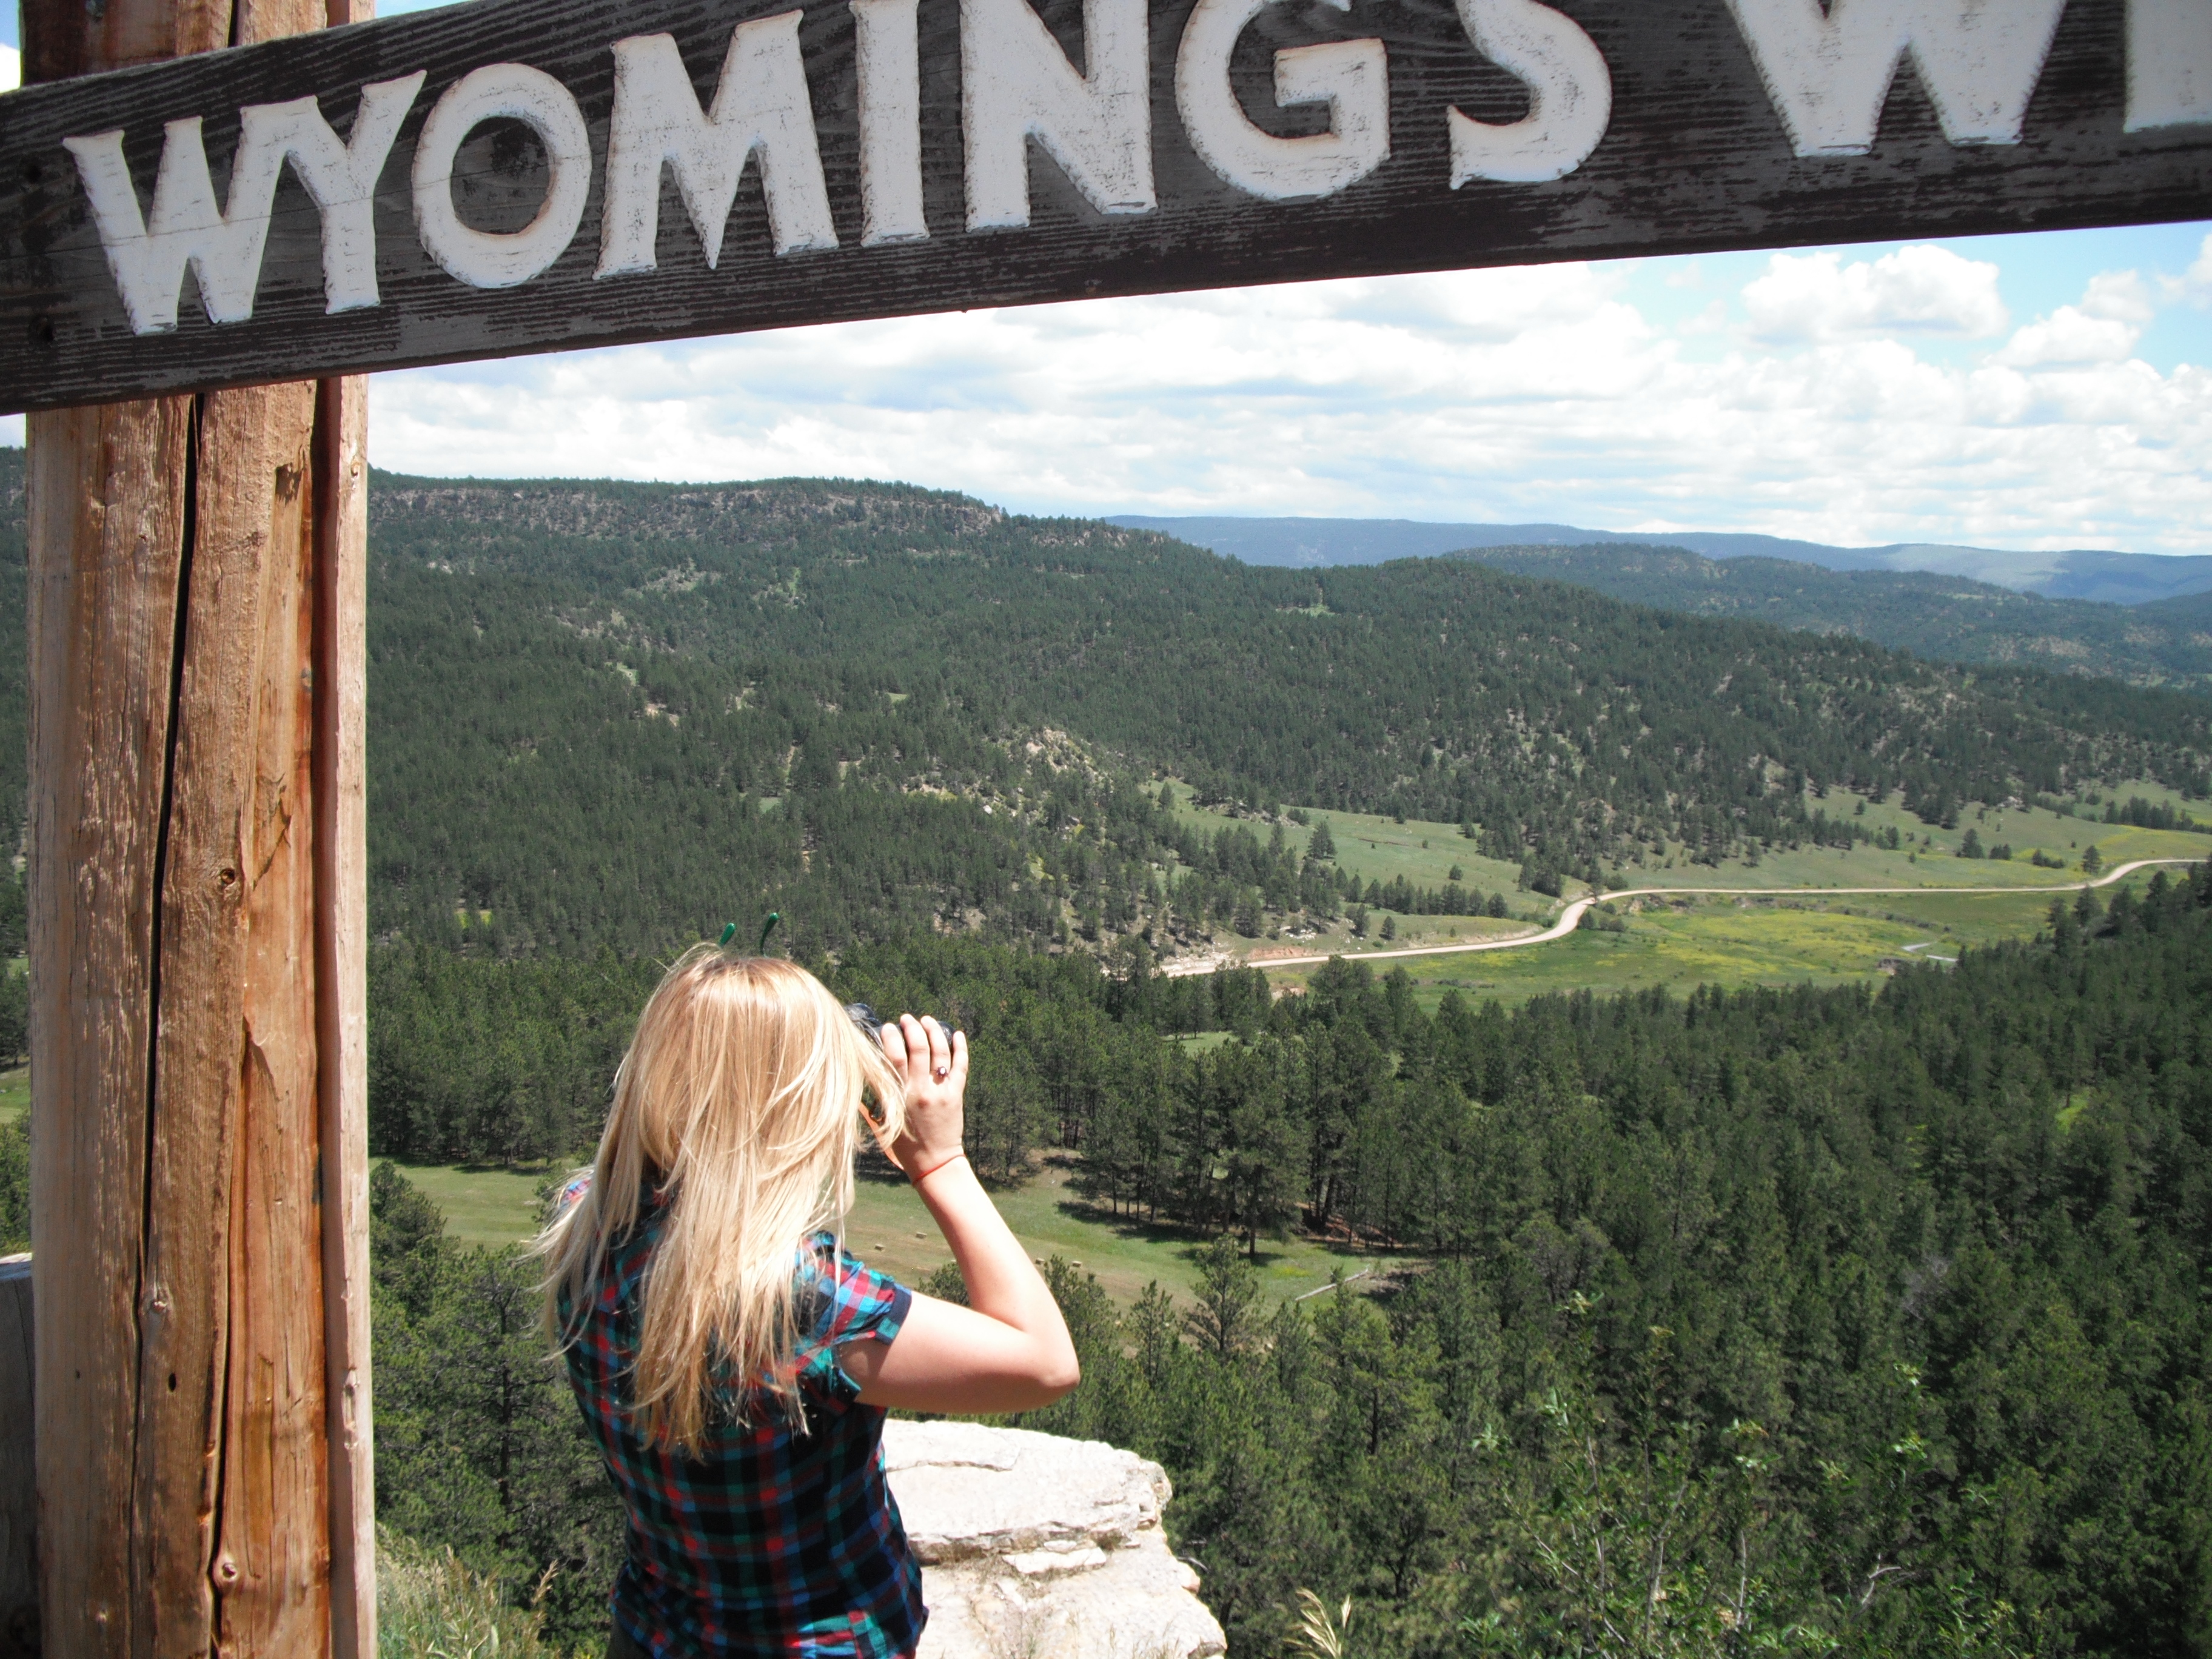 Priscilla in Wyoming.  I was looking for my binoculars, and came to the realazation that they were in the car before it was broken into... Great, they took my grandfather's binoculars that were worth ten bucks. I cursed the theaves here on top of Big Sky Country.